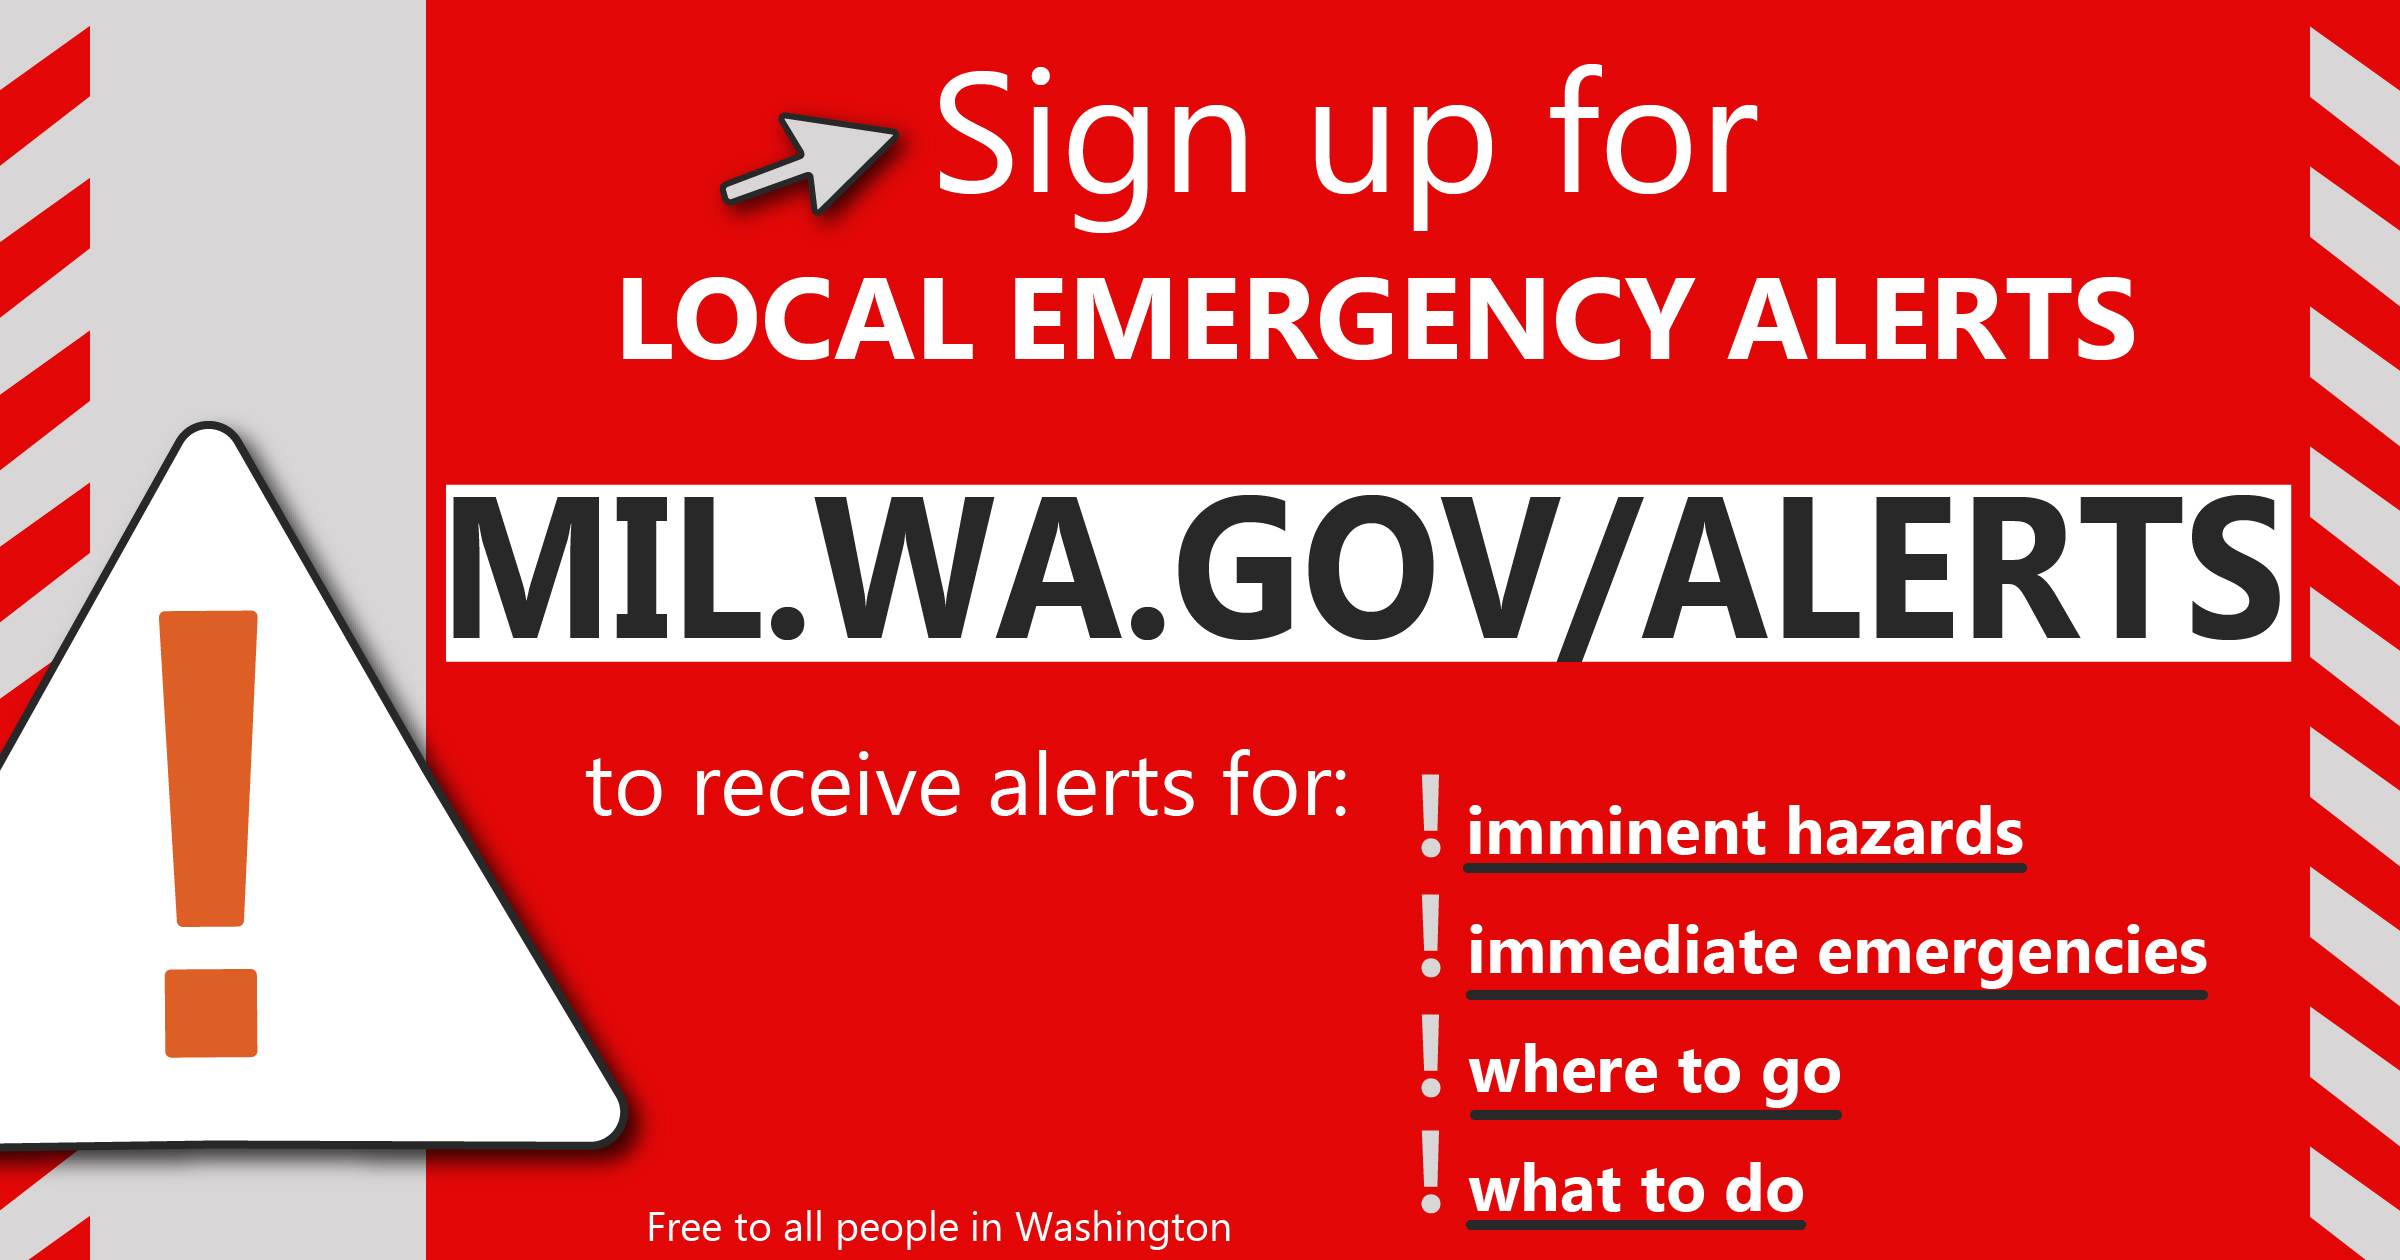 A banner says sign up for local emergency alerts mil.wa.gov/alerts